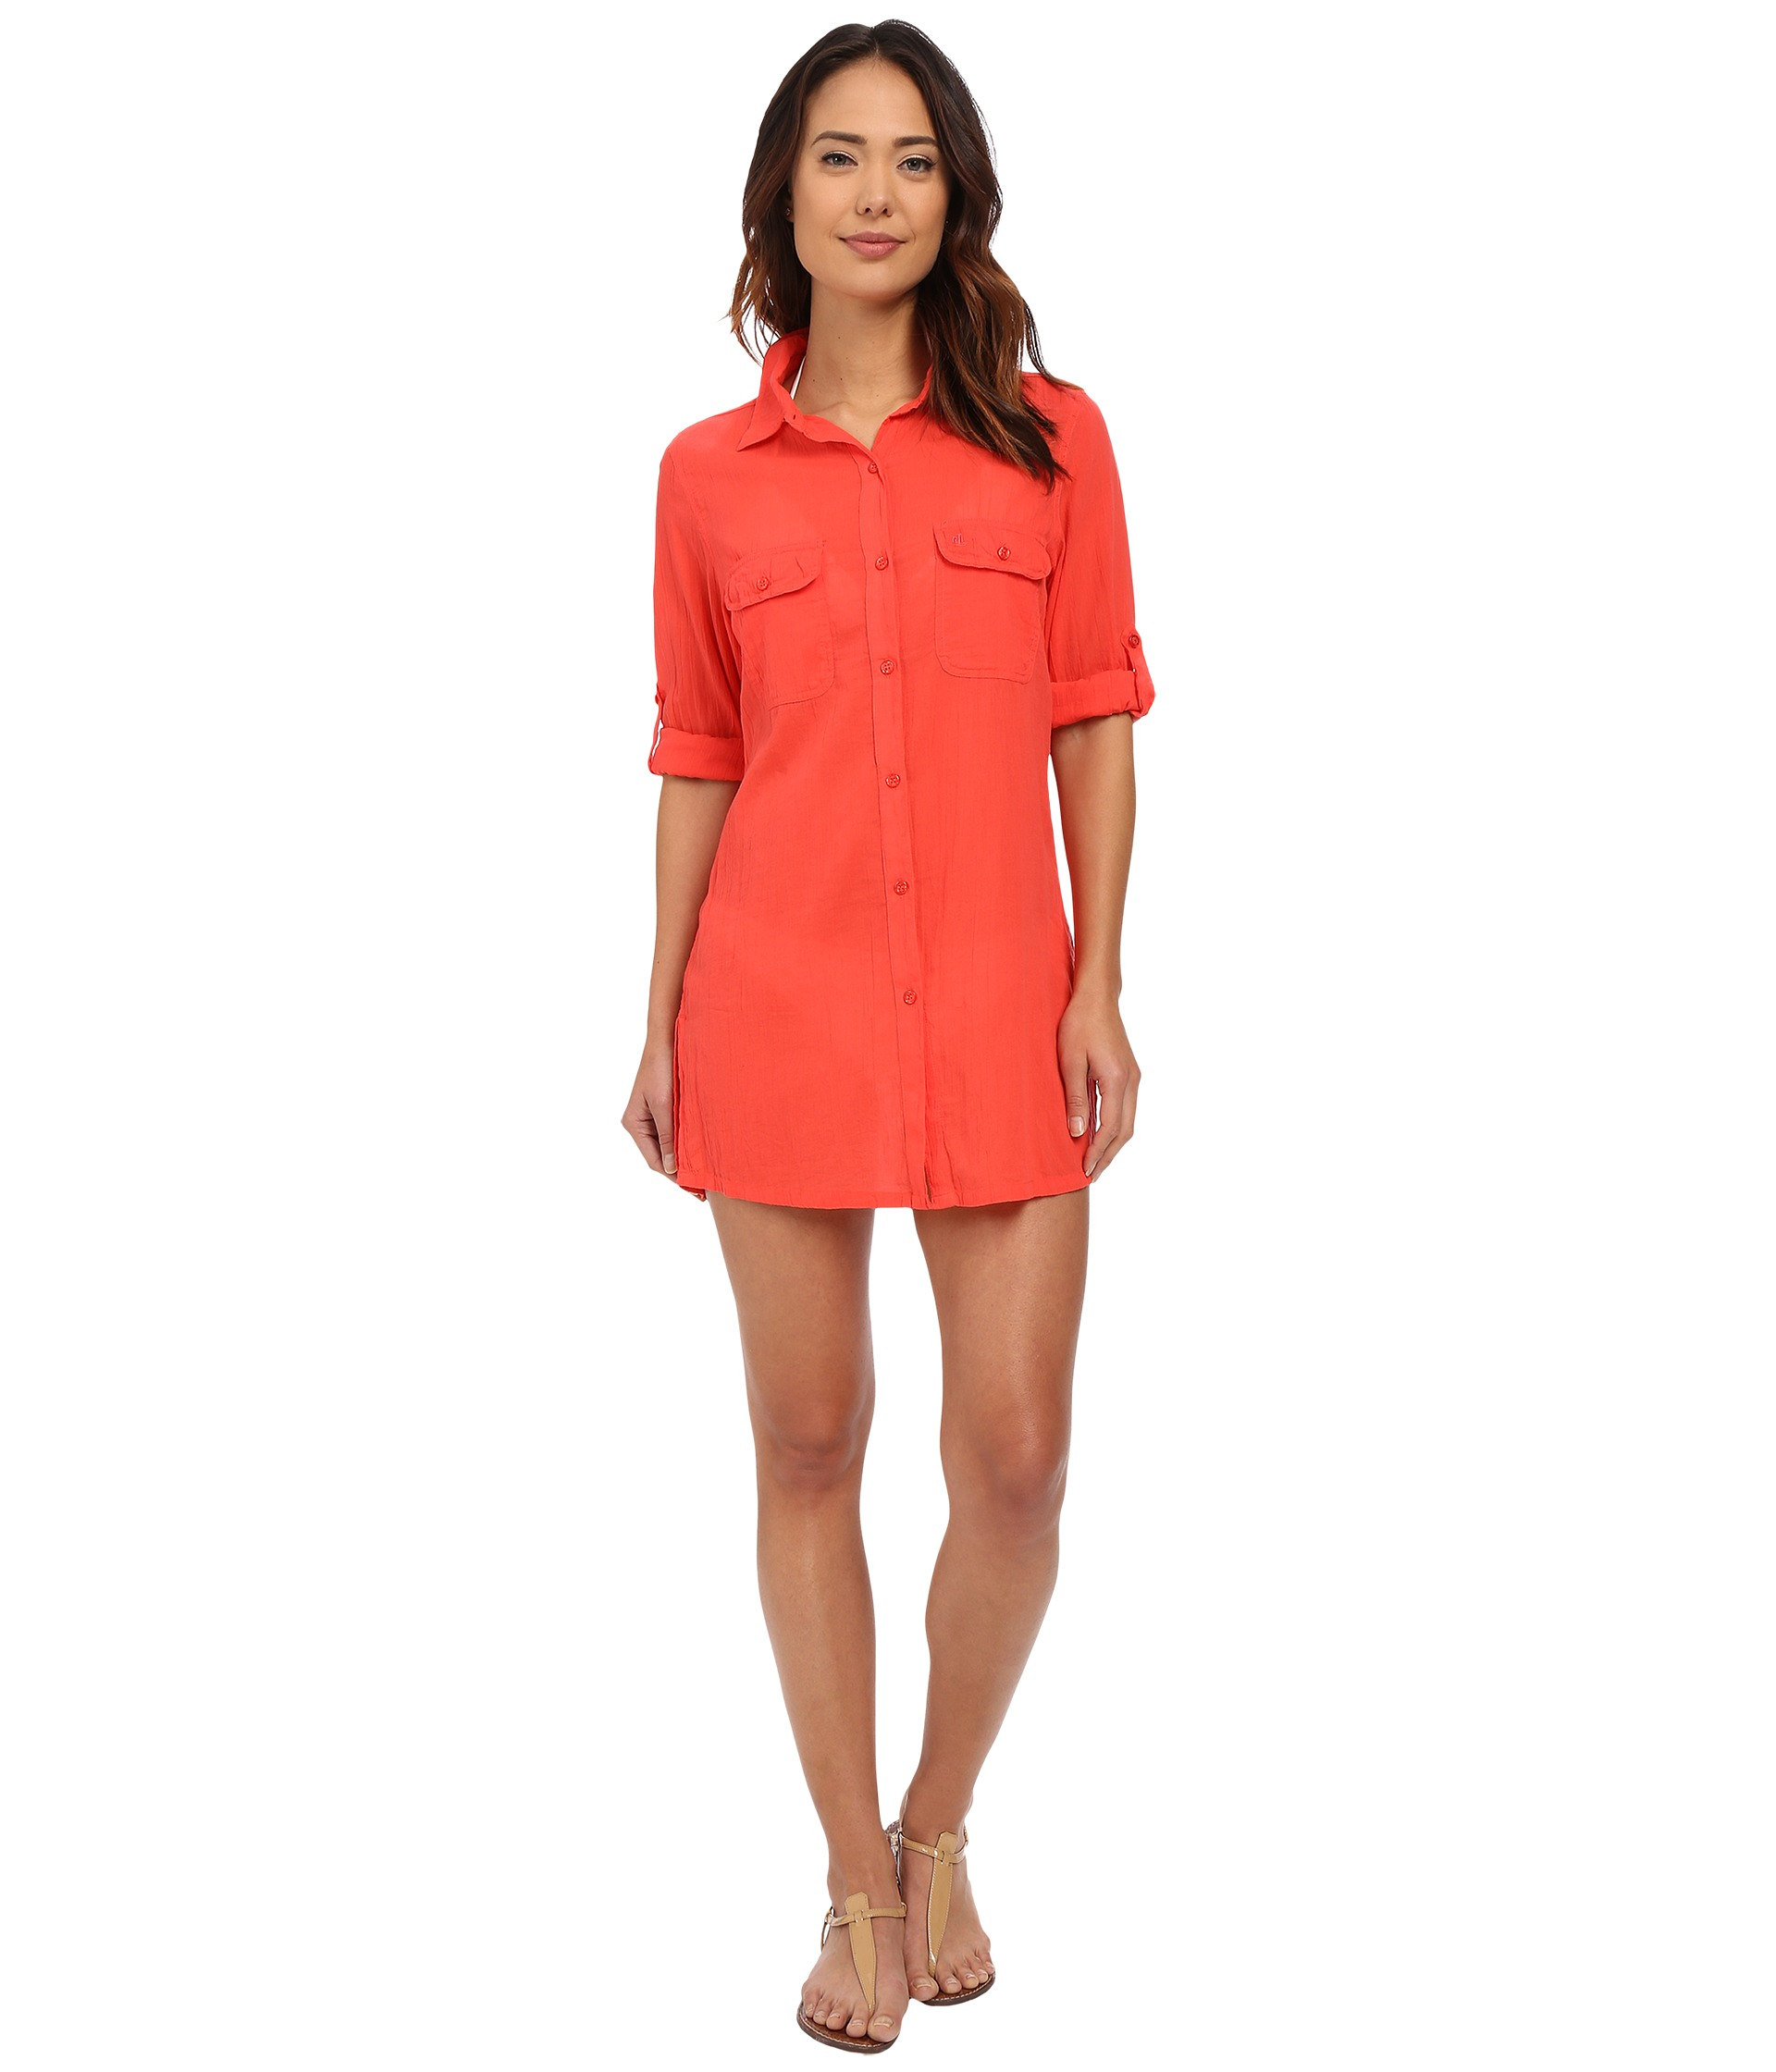 654a2d60e79f0 Lauren by Ralph Lauren Crushed Cotton Camp Shirt Cover-up in Pink - Lyst